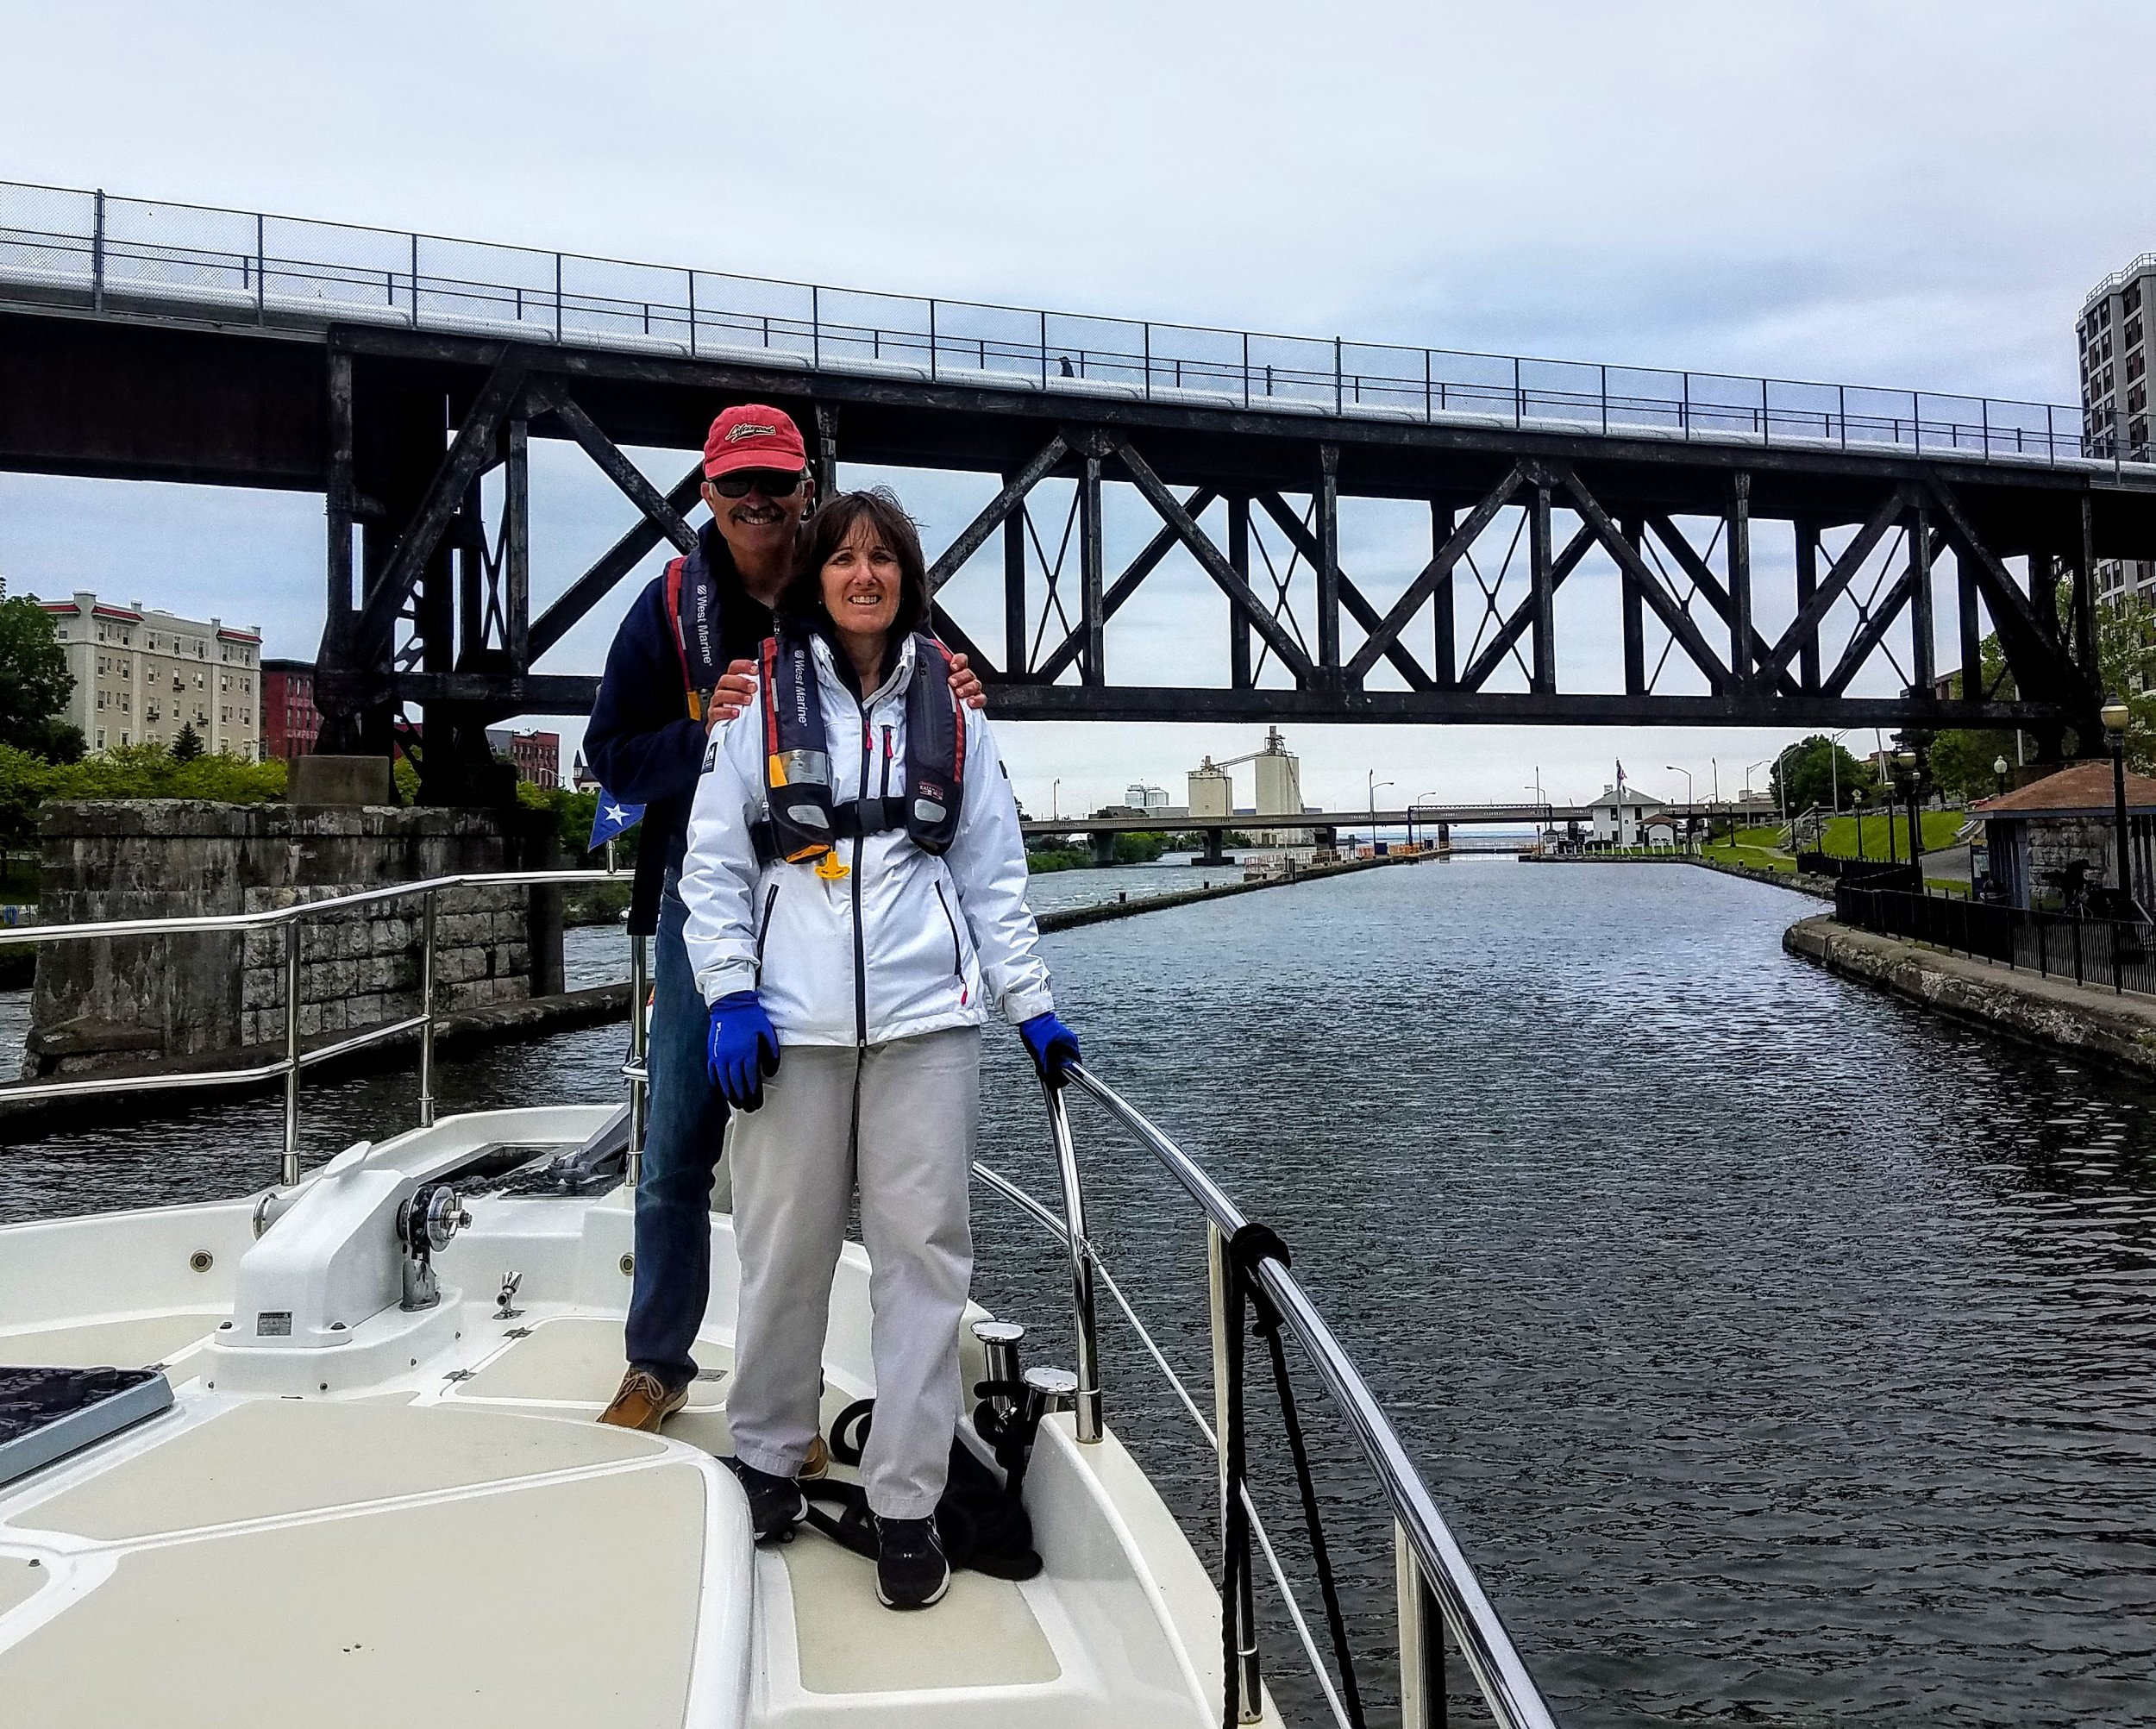 Maggie and Owen in front of the final lock…lock 8